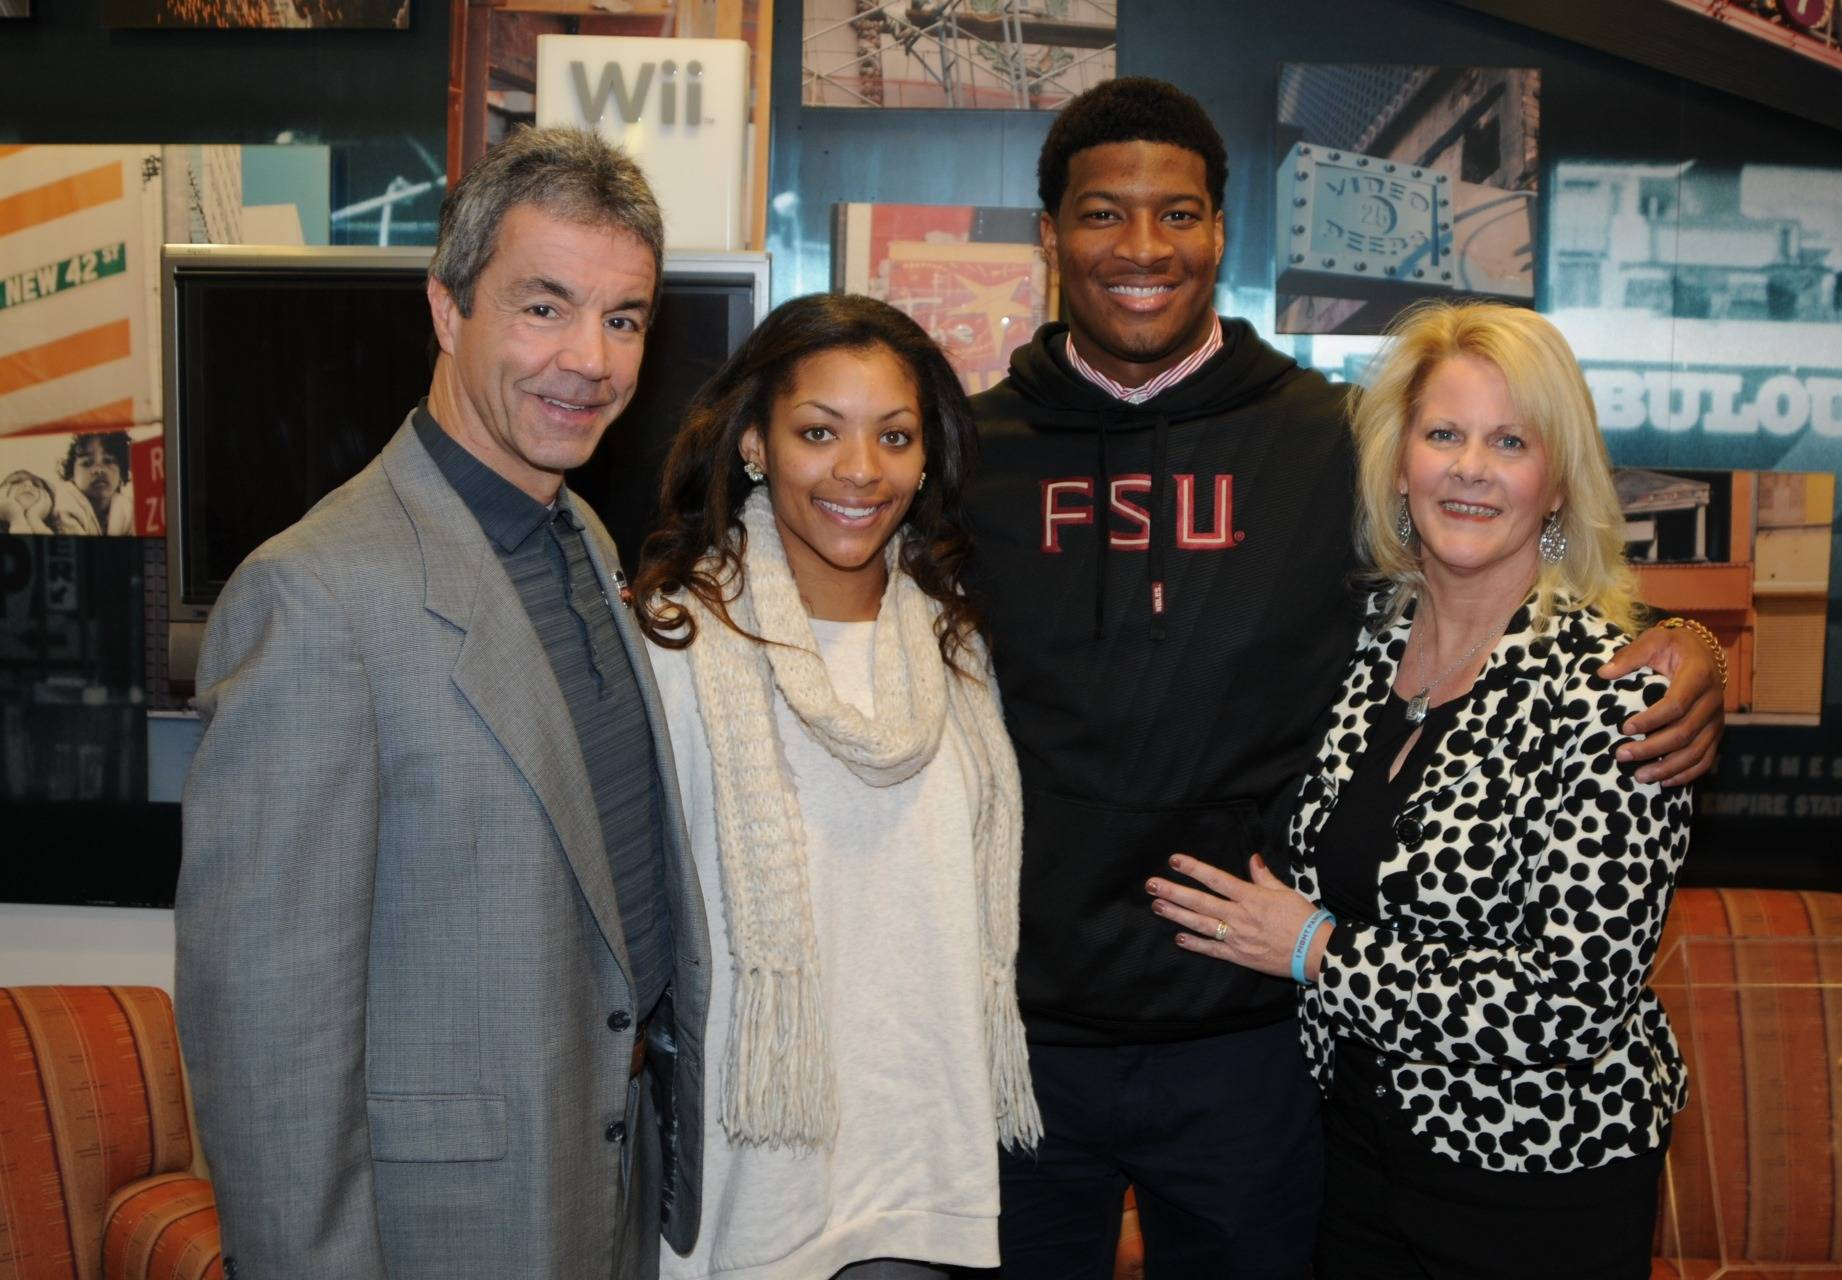 Senior Associate Athletics Director Monk Bonasorte with Jameis Winston (Photo by Jeff Romance)